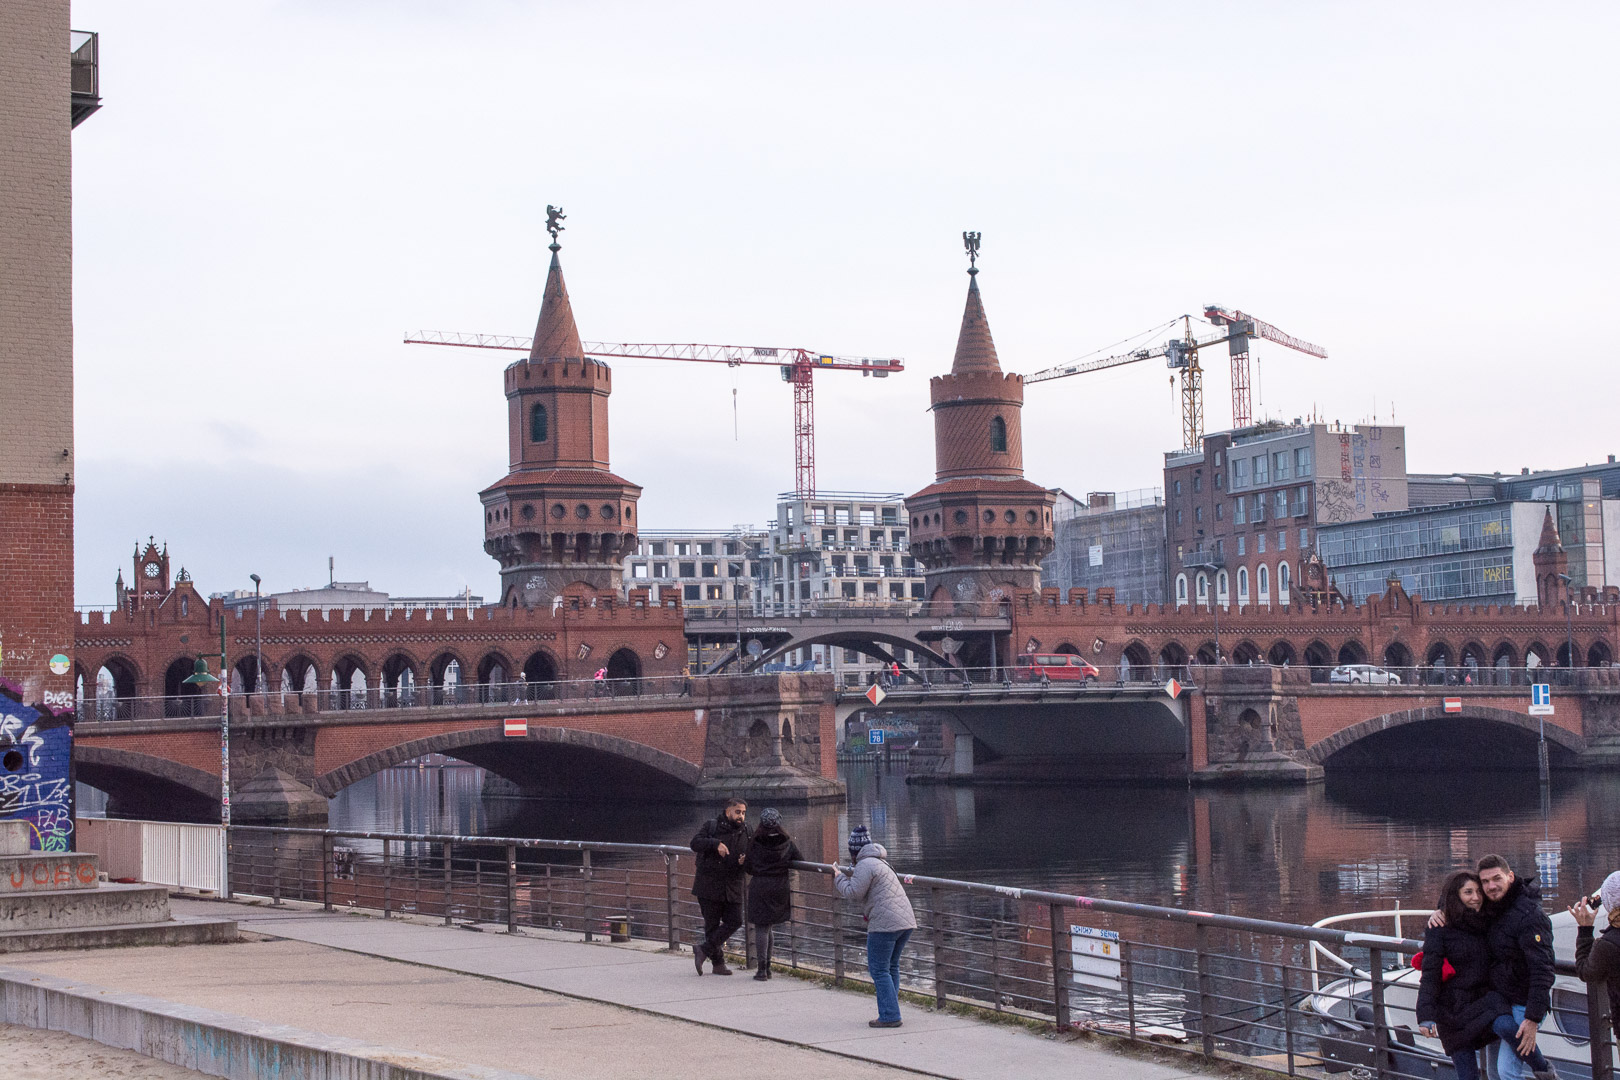 Oberbaum Bridge in Berlin. It links East and West Garmany